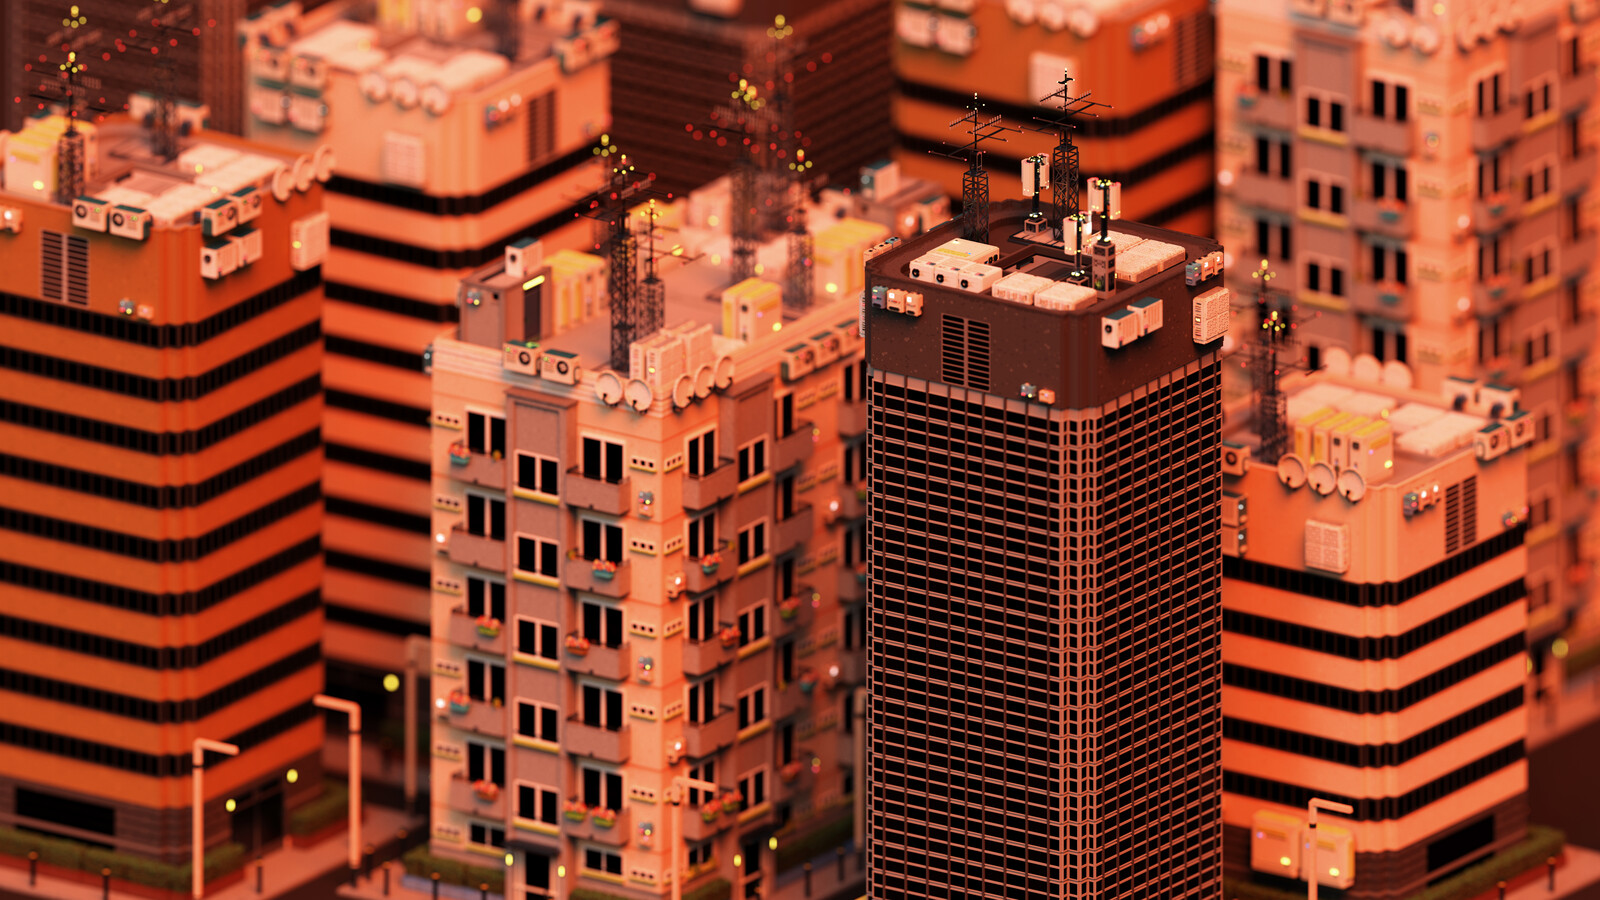 Voxel Game Project - Skyscraper n°3 - Dusk